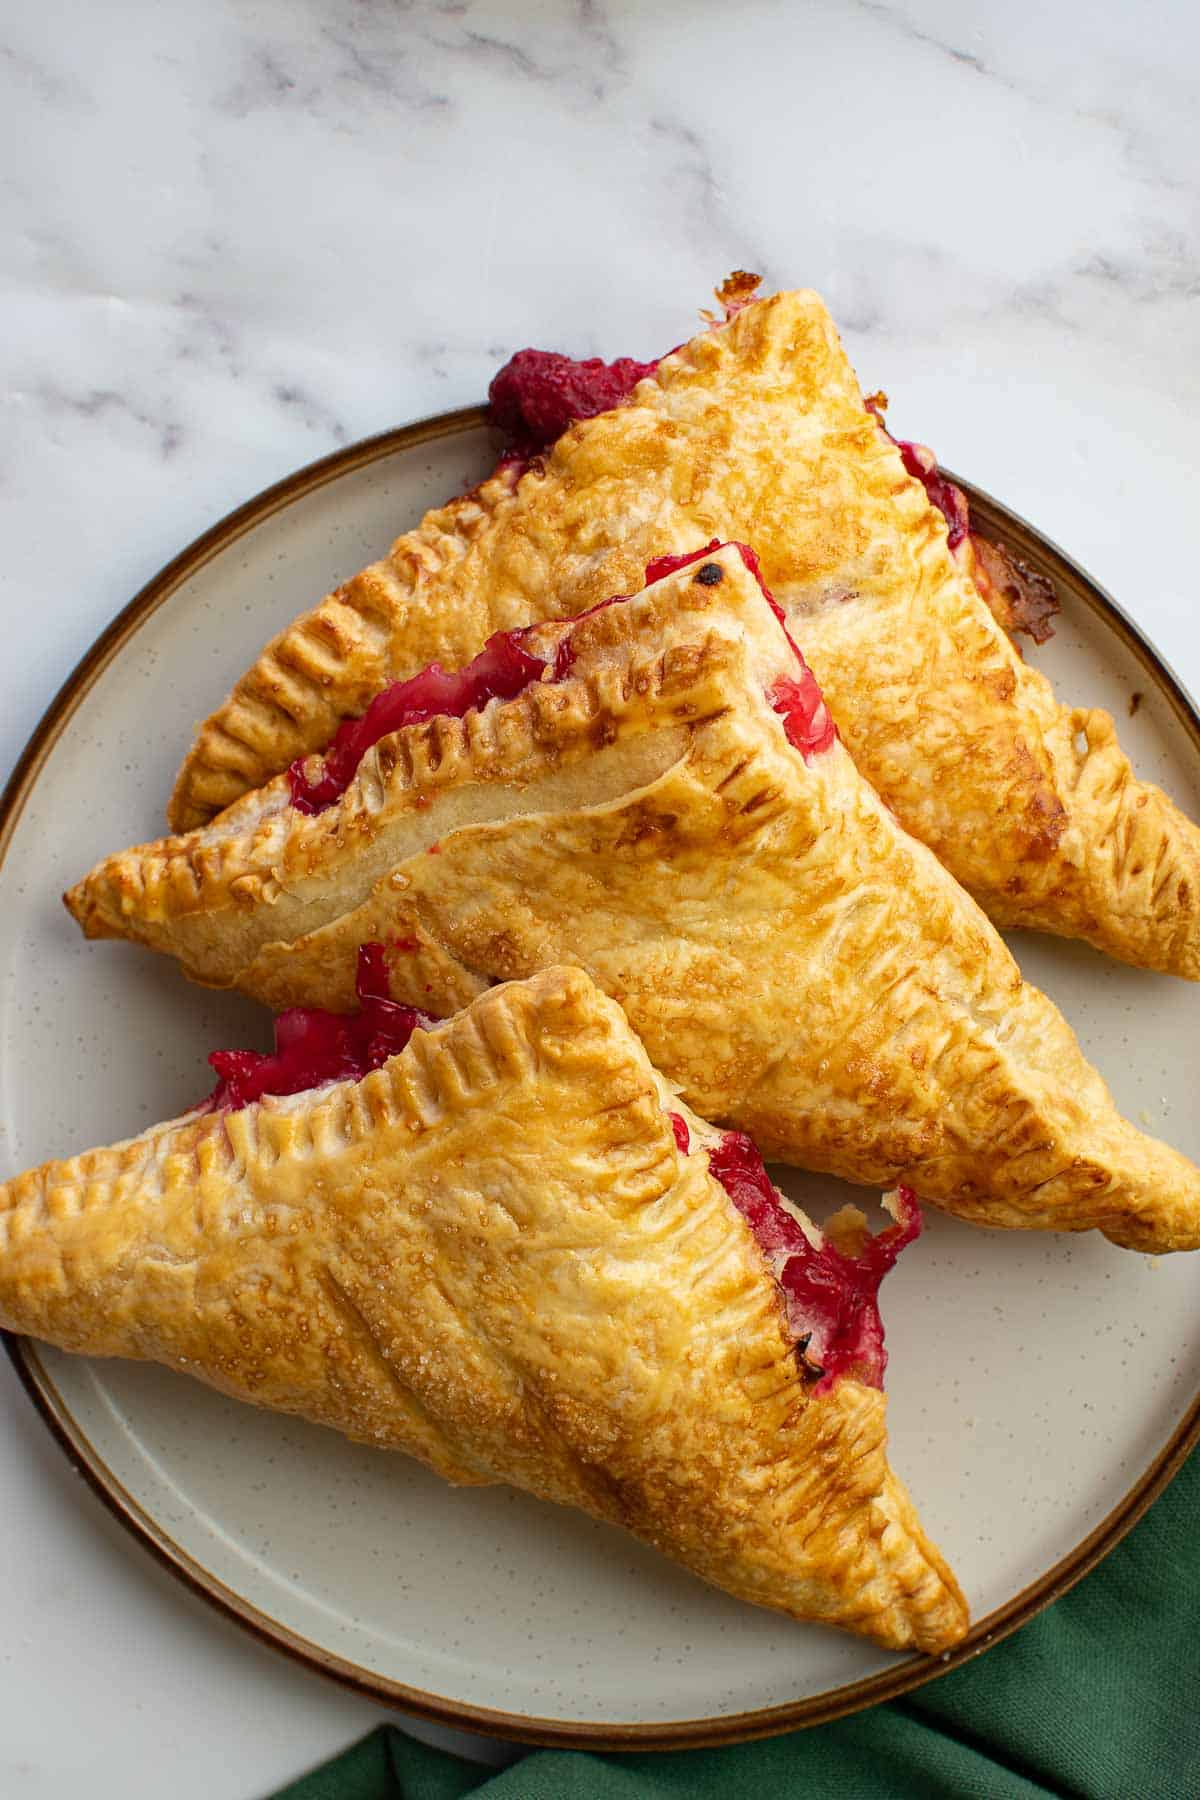 A plate with several raspberry hand pies.